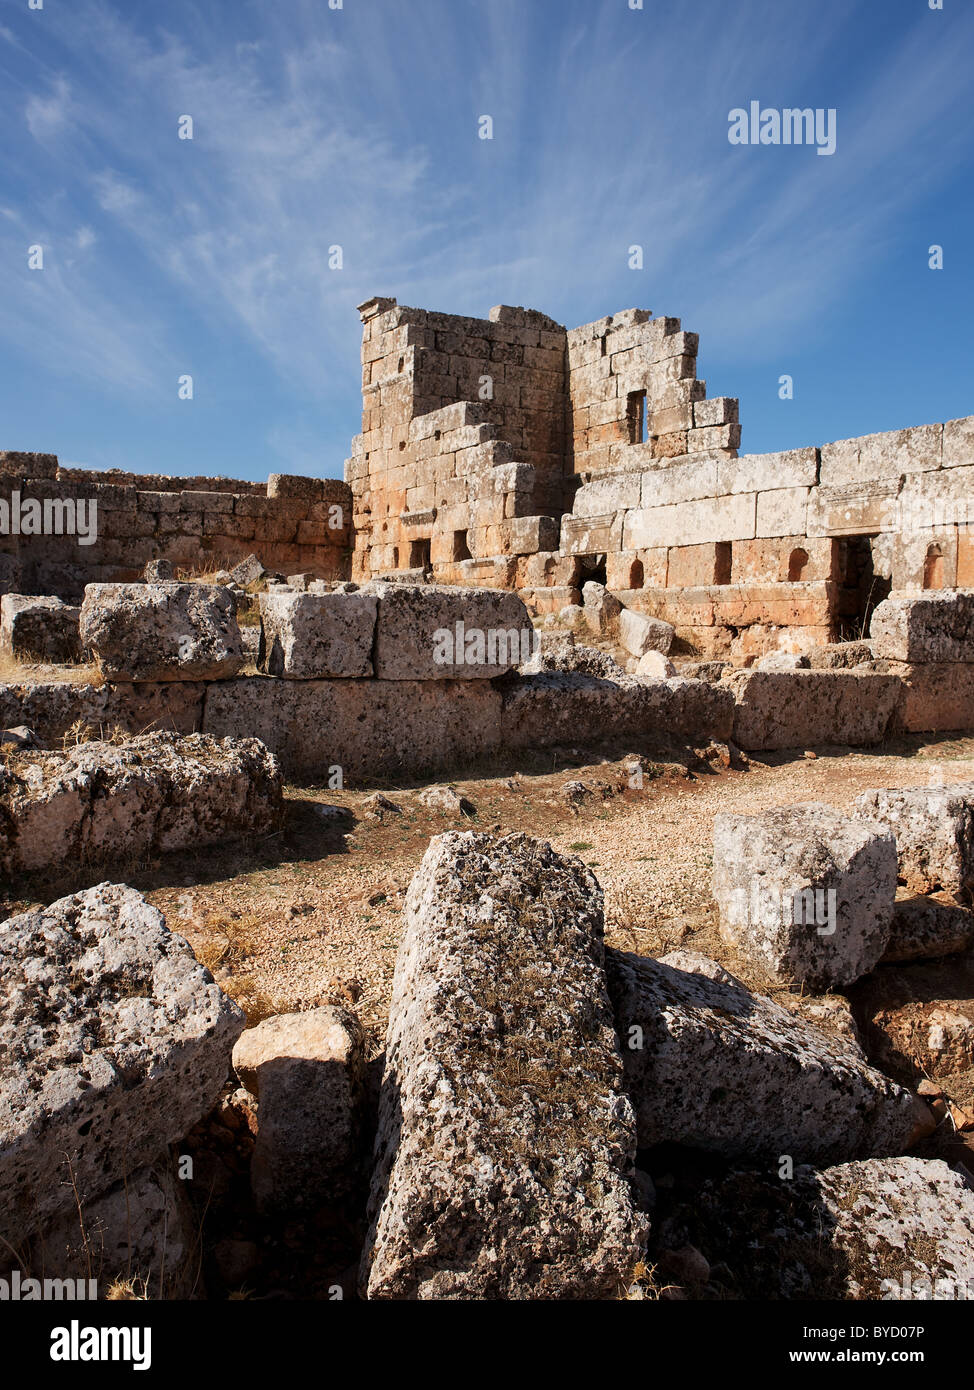 Forgotten city of Serjilla, Syria - Stock Image